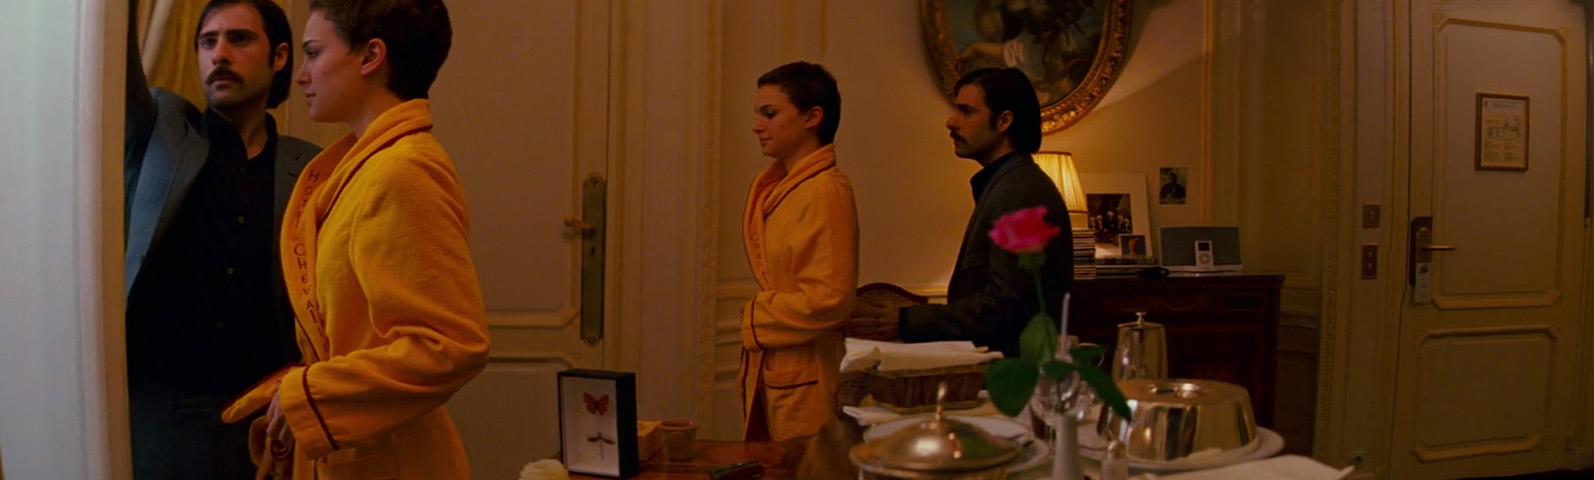 Hotel-Chevalier-Wes-Anderson-film-panoramas-wmiii-6